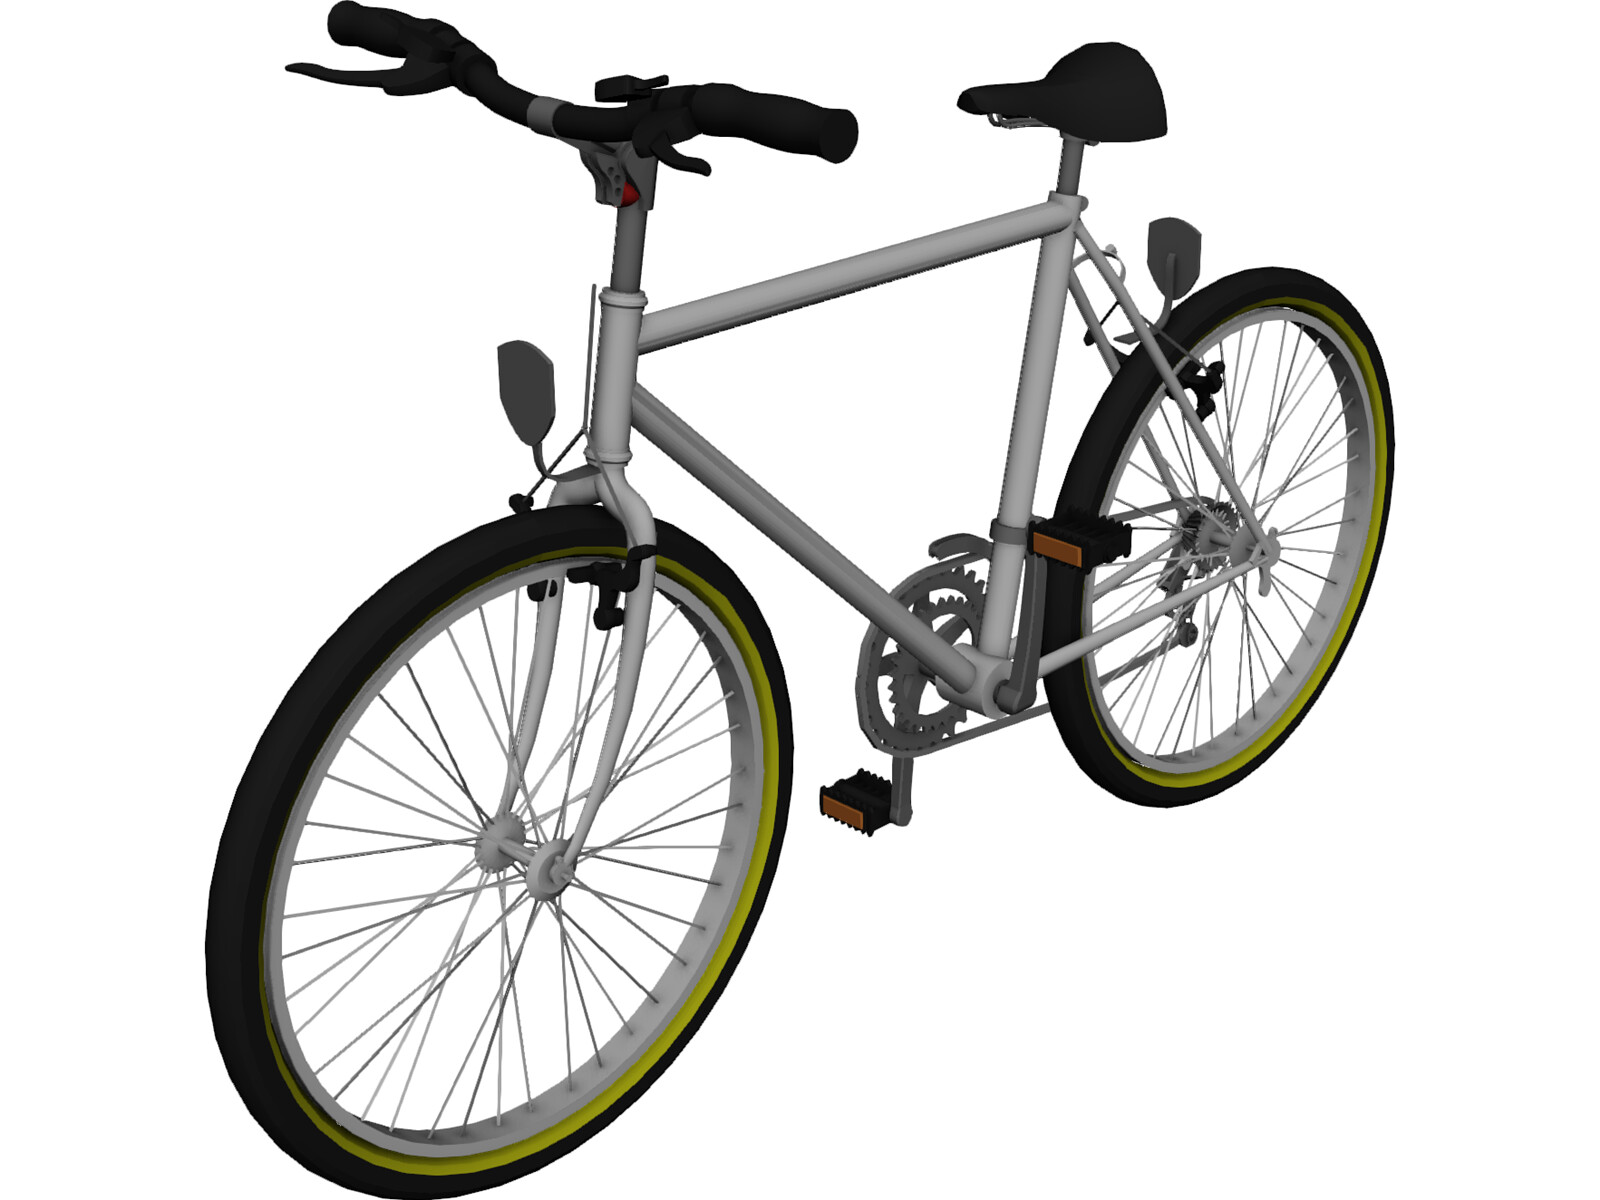 Bicycle 3d Models 3d Cad Browser Motorcycle Review And